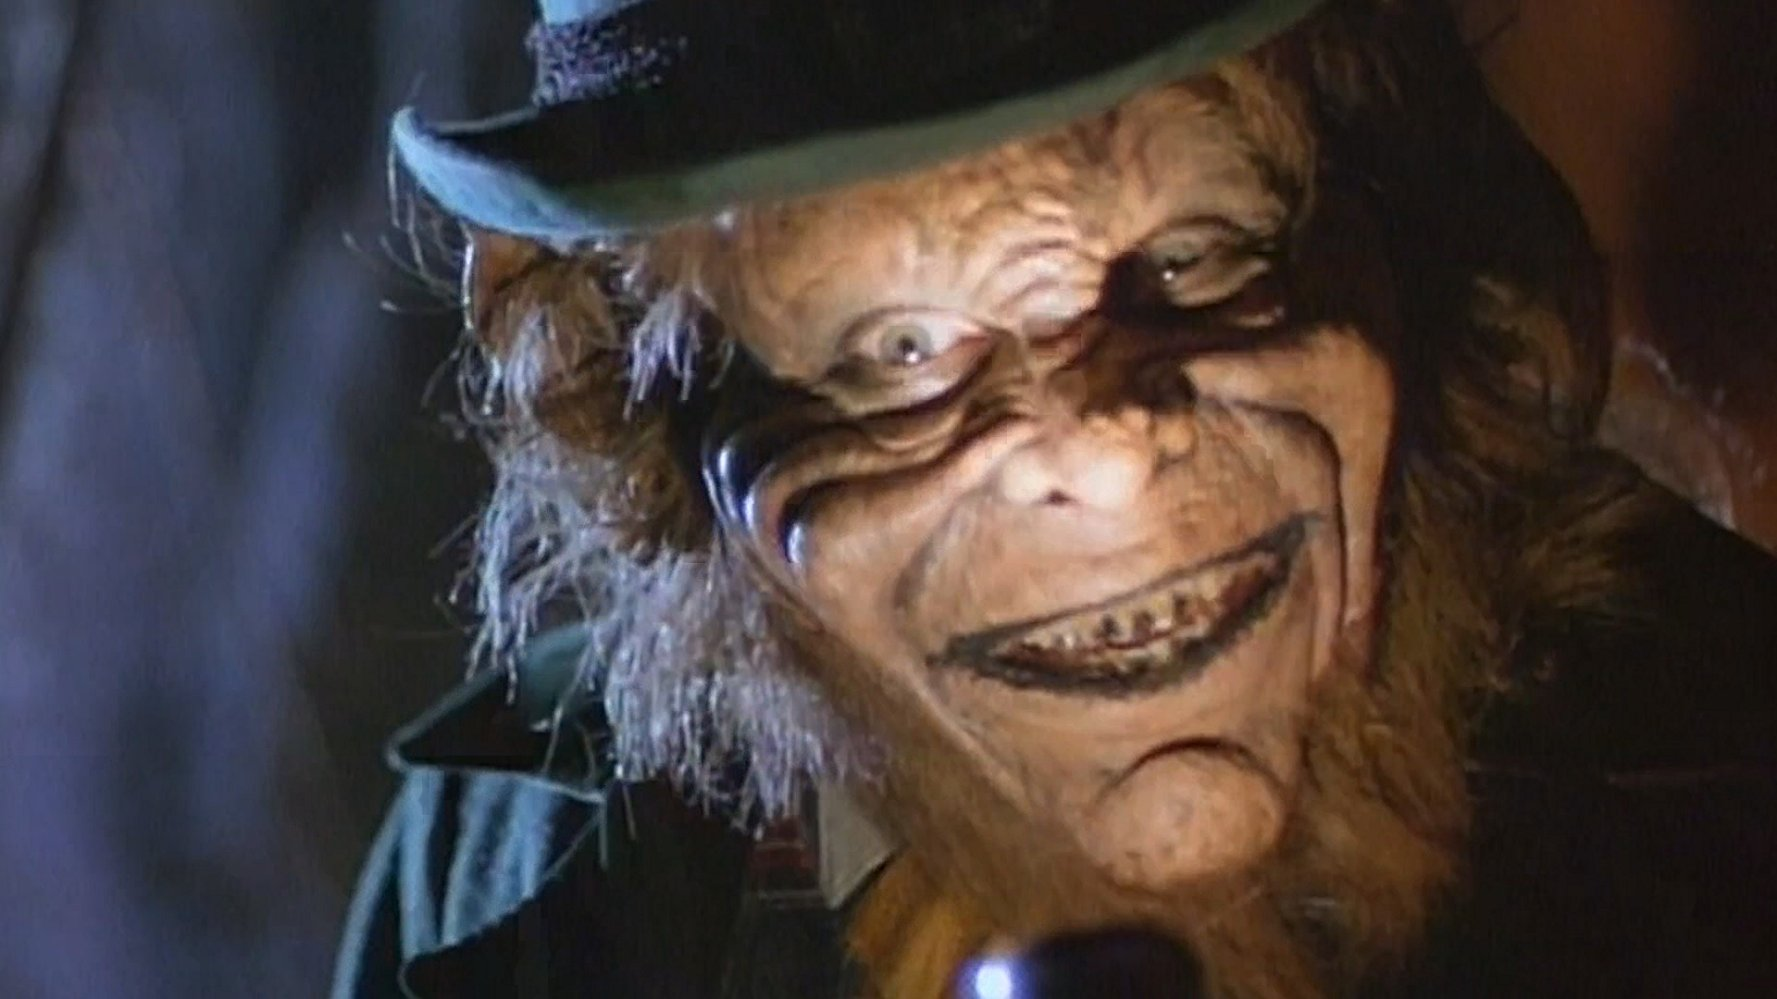 Babes in leprechaun the movie — pic 8